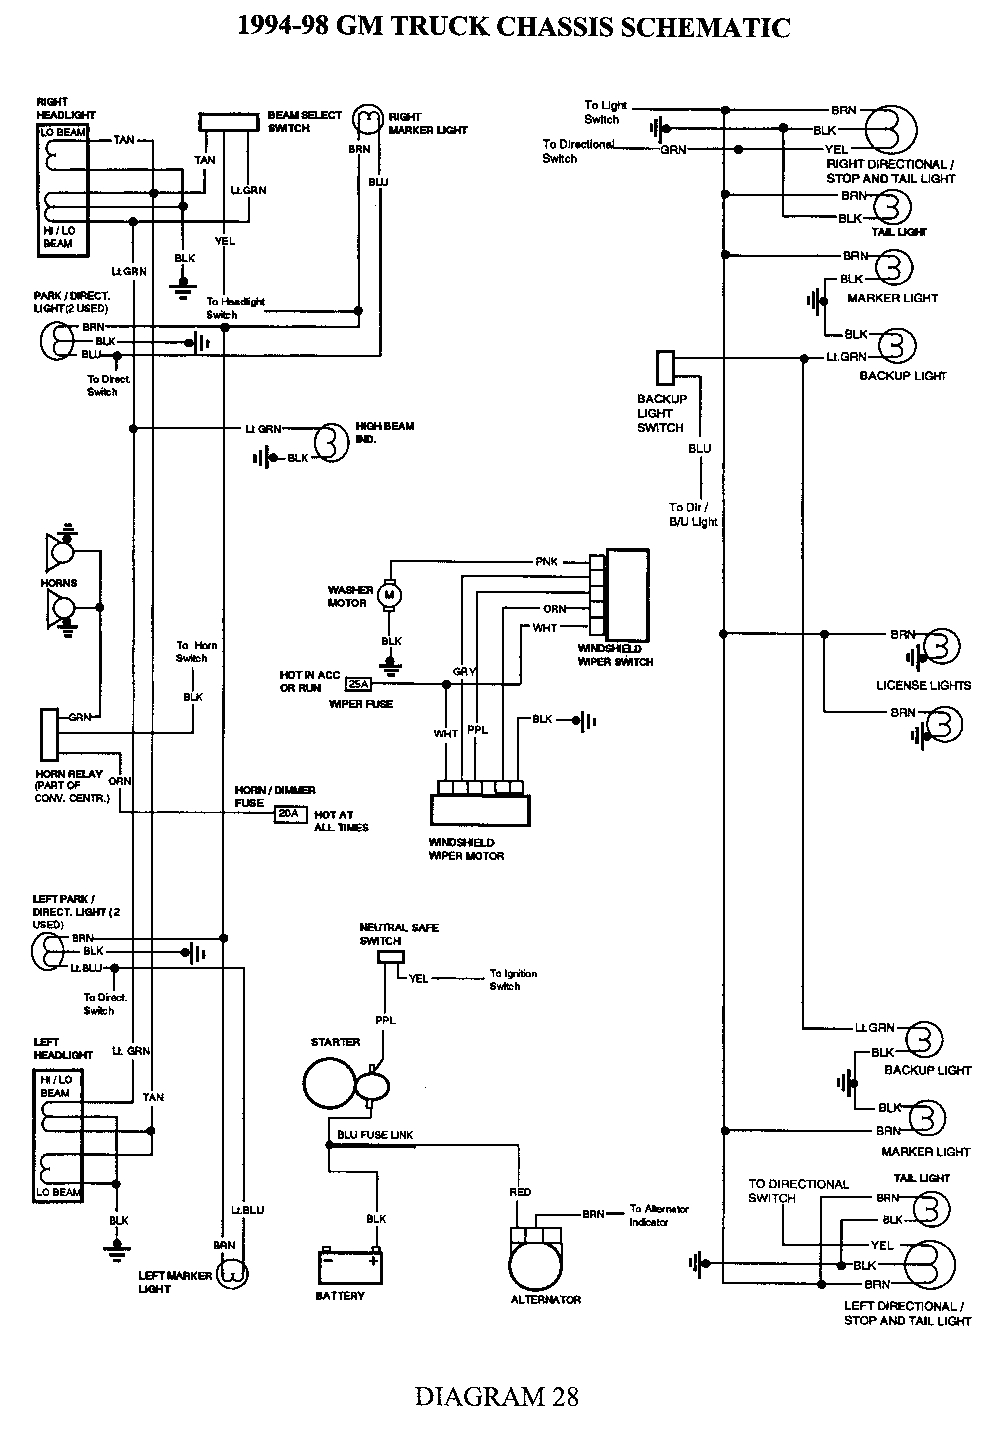 wiring diagram how to bypass security on chevy impala engine abs system mercedes benz sel parts free gif